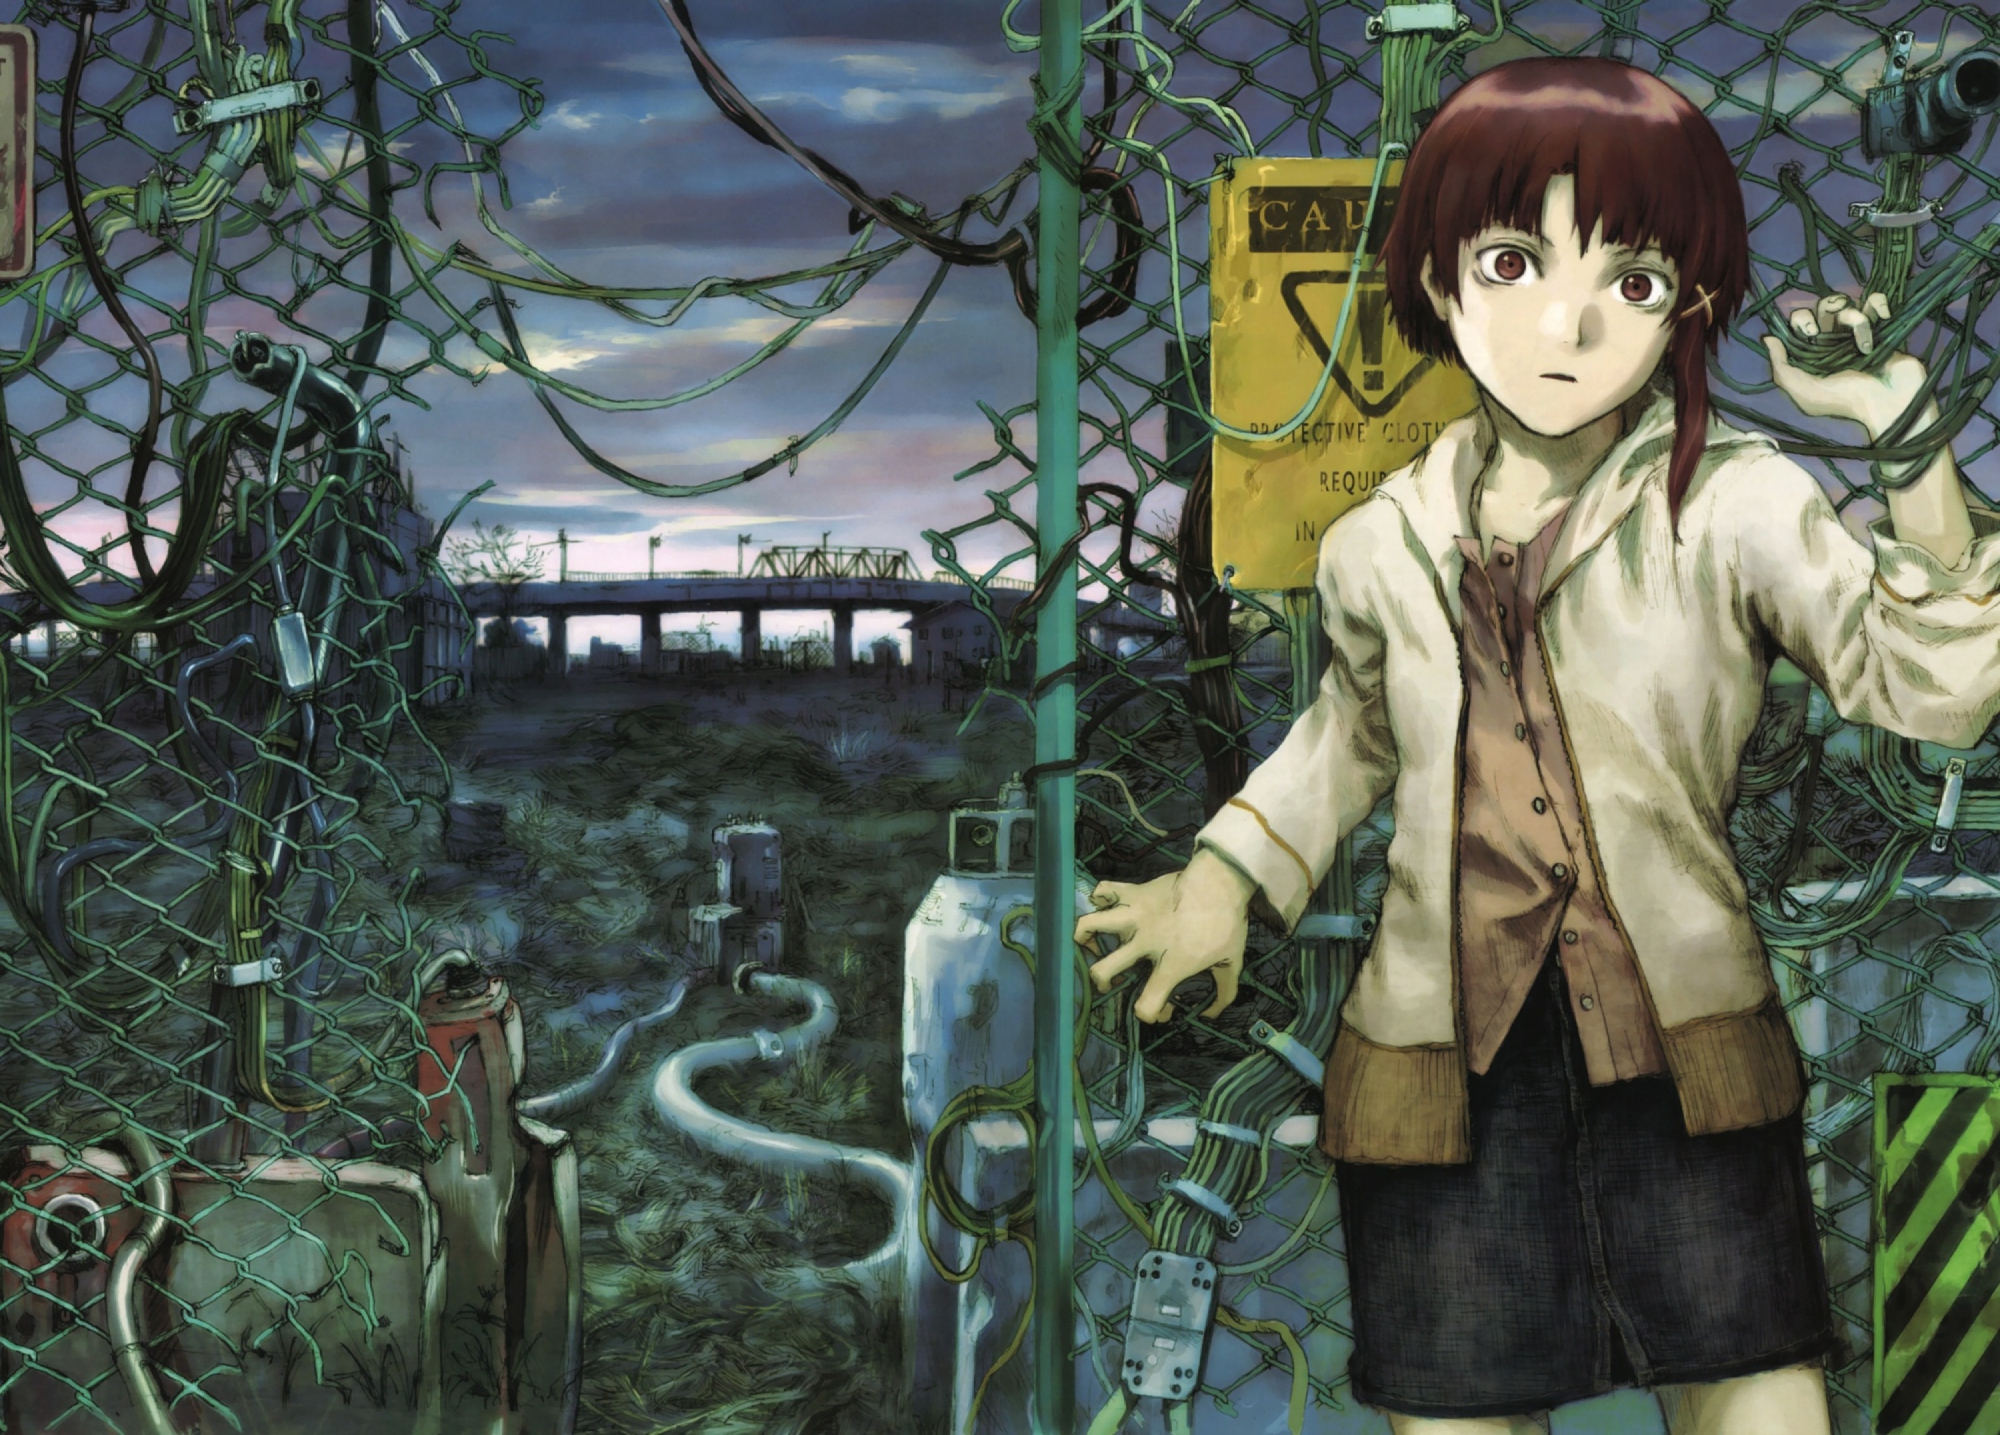 Abe yoshitoshi brown eyes brown hair iwakura lain serial experiments lain s